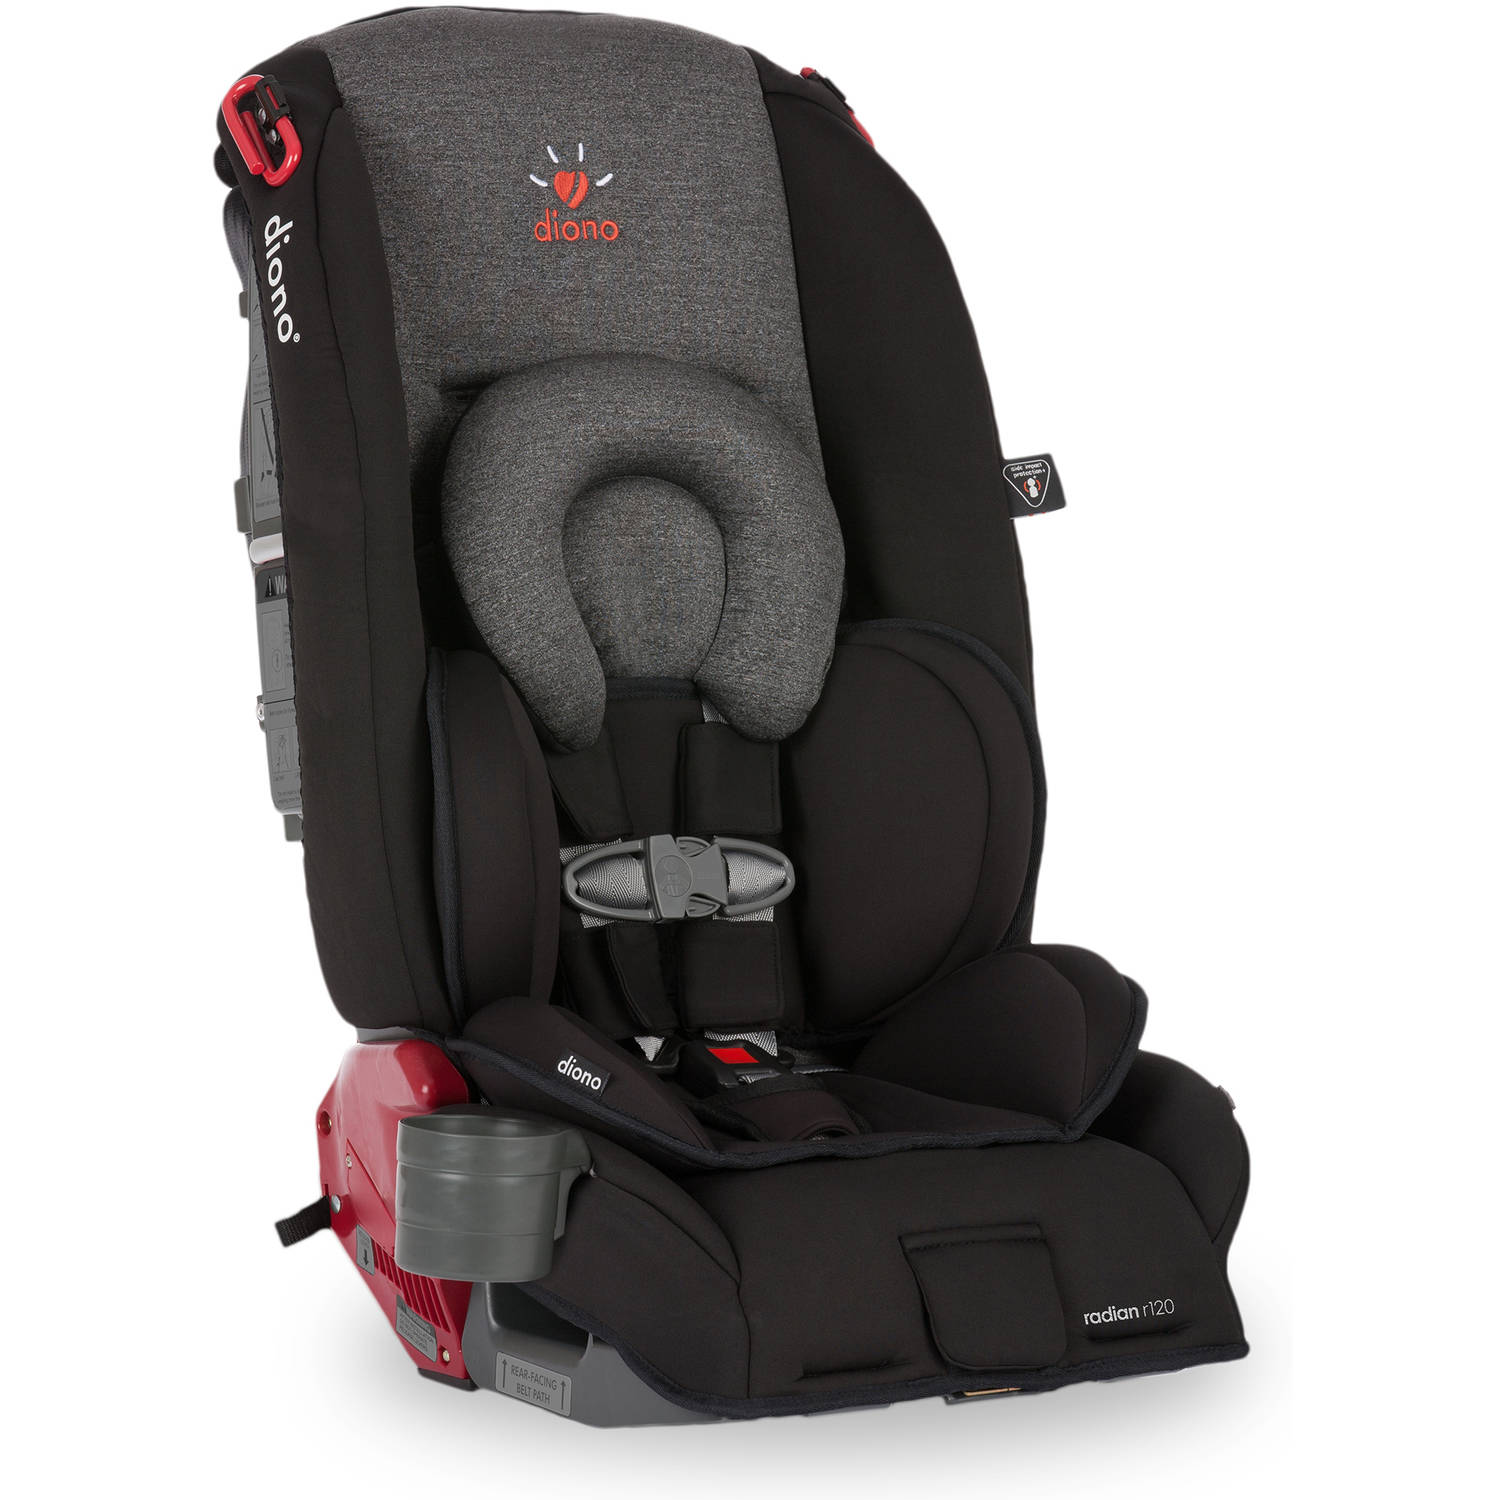 Diono Radian r120 Convertible car Seat and Booster, Essex